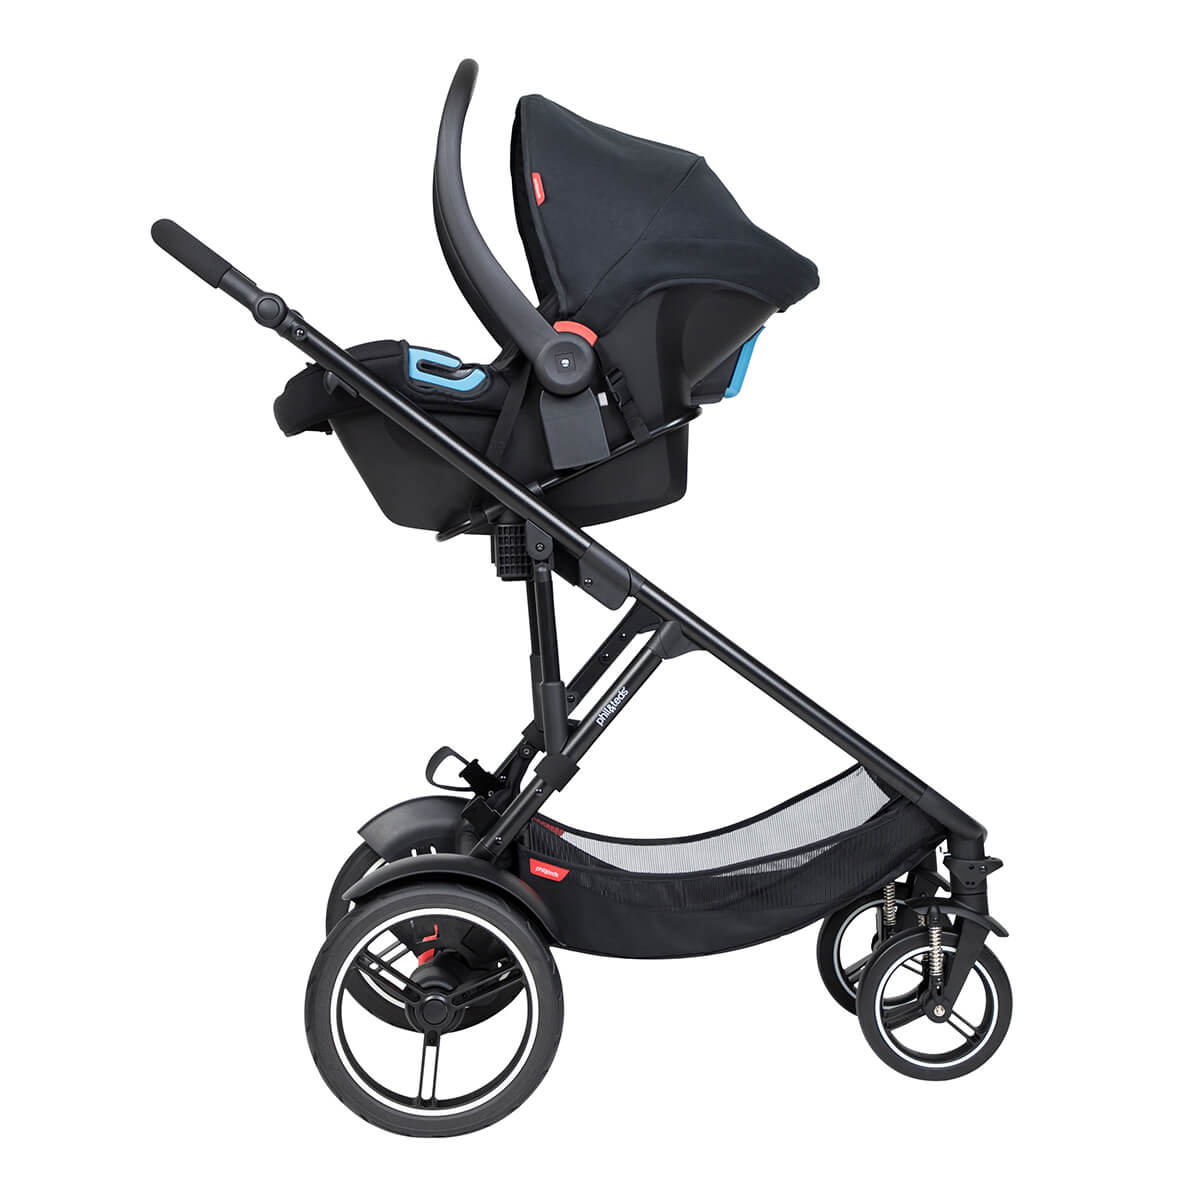 https://cdn.accentuate.io/4417246363682/19437753204914/philteds-voyager-buggy-with-travel-system-in-parent-facing-mode-v1626482968654.jpg?1200x1200